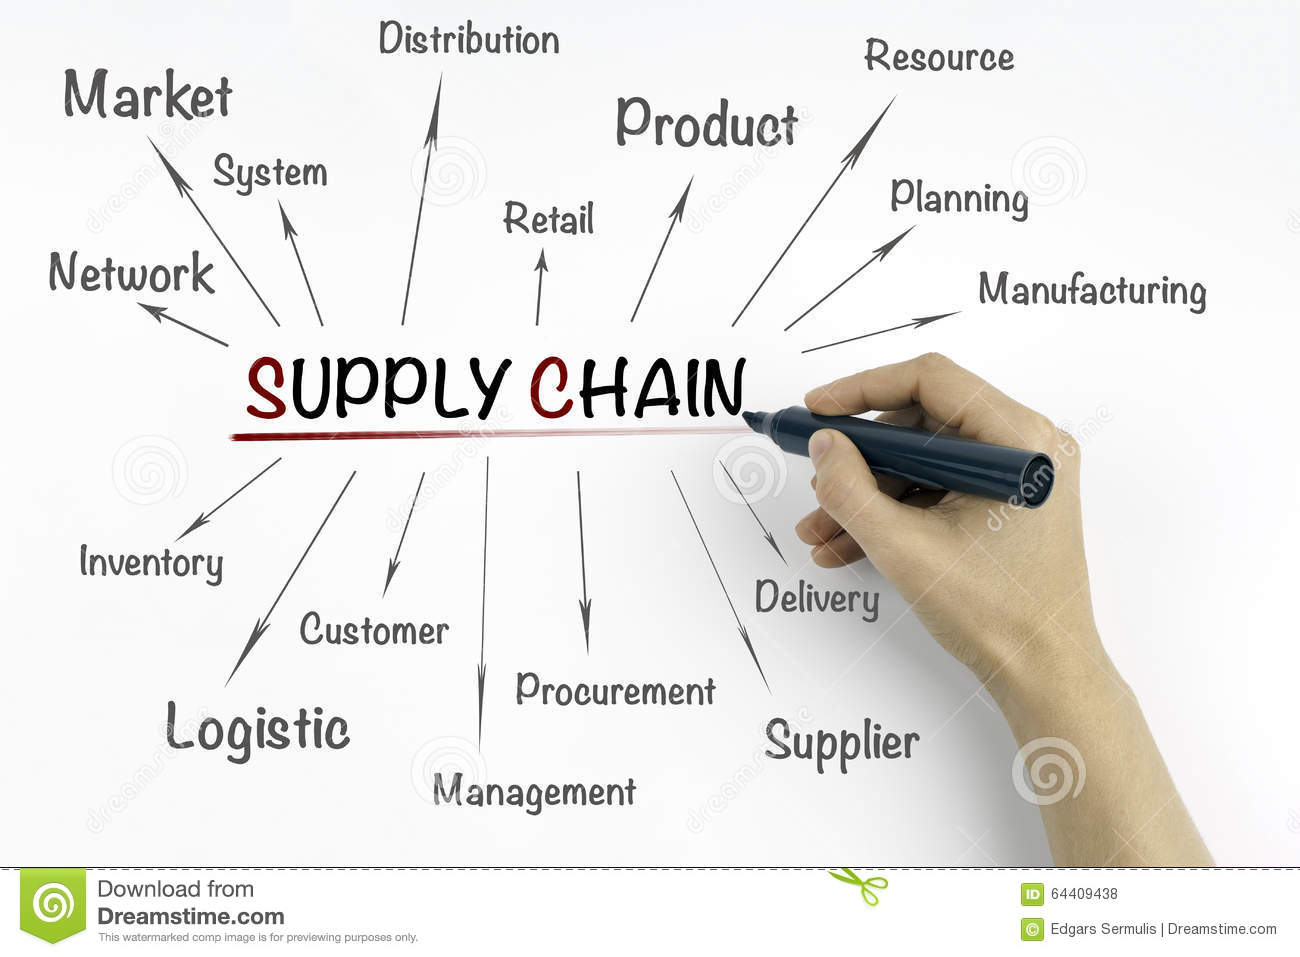 Supply Chain Management the Concept&nbspEssay